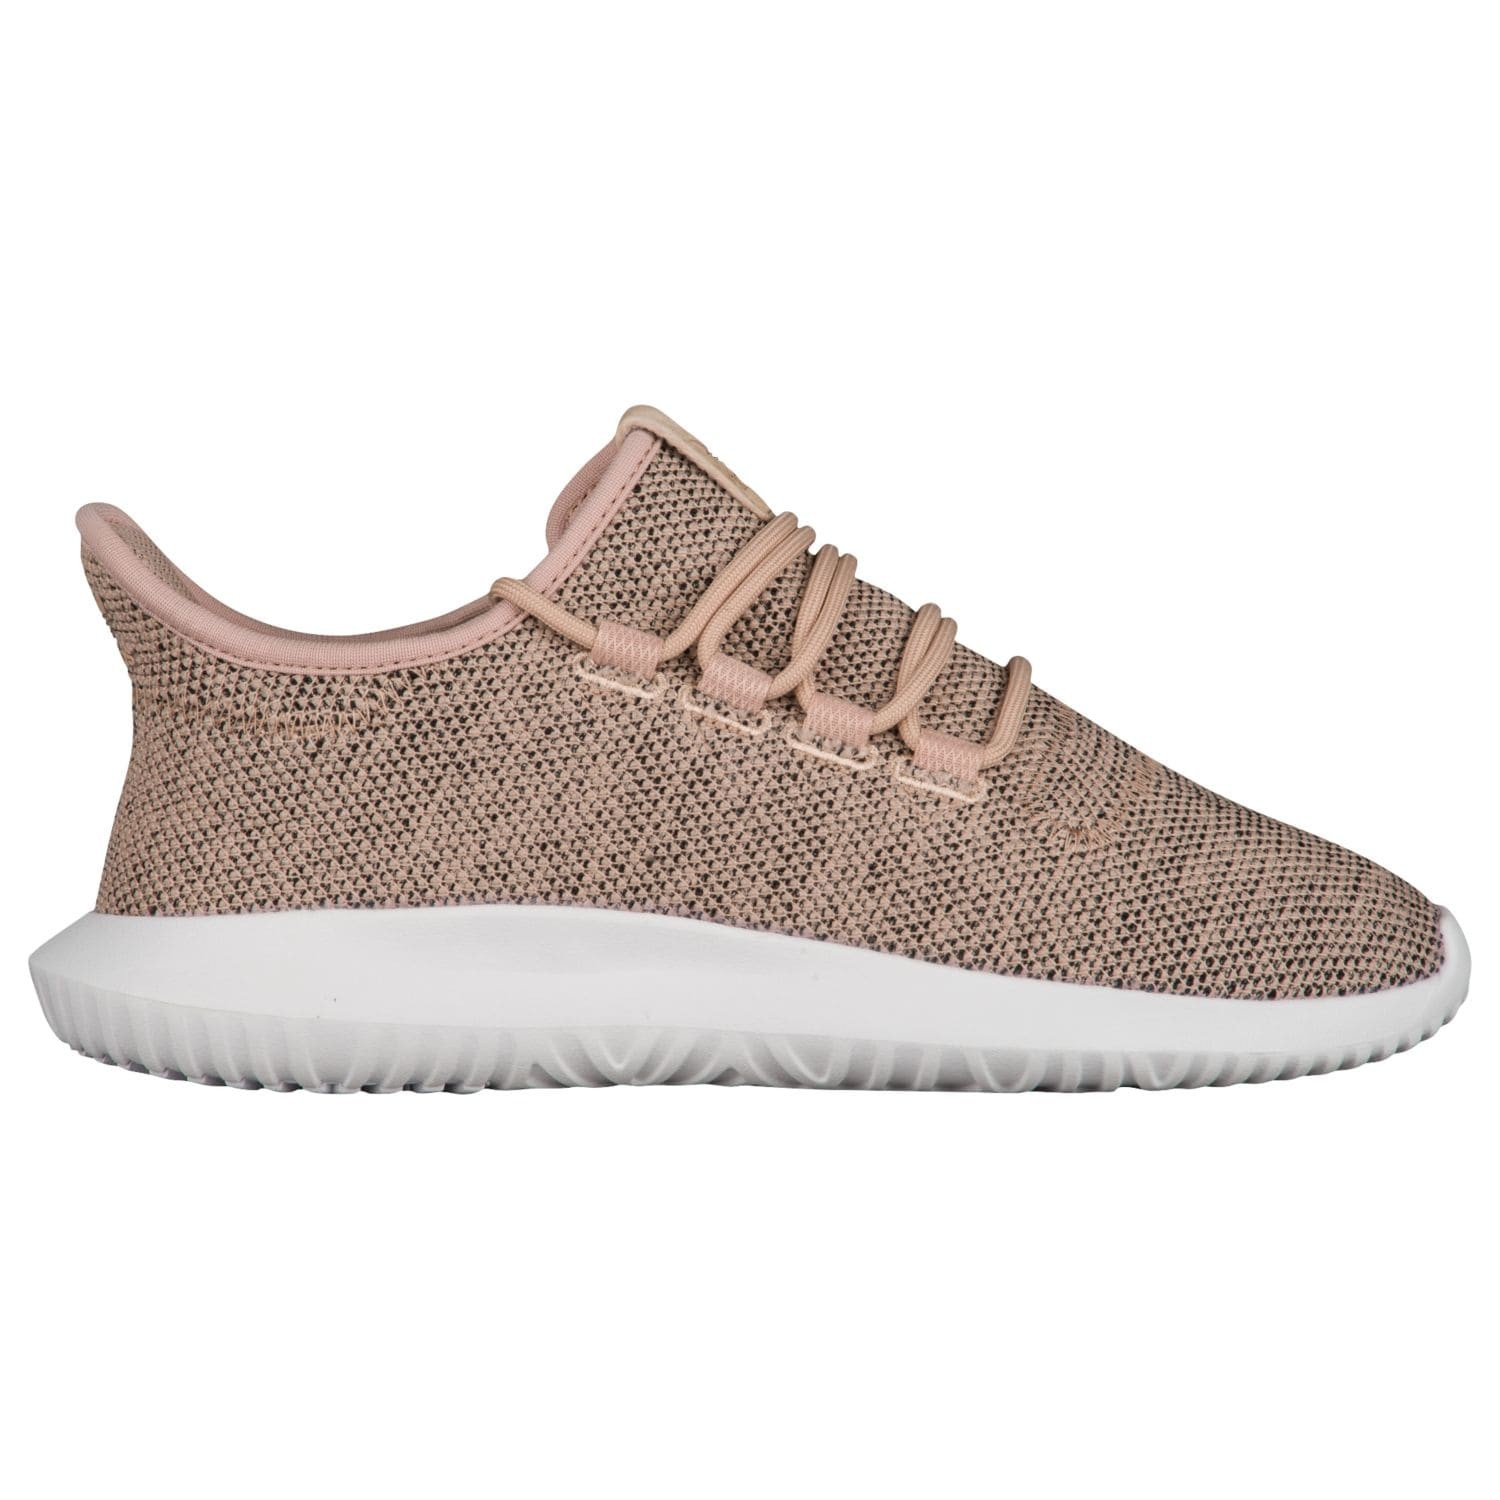 adidas Originals Tubular Shadow Skor CG4515 - Dam